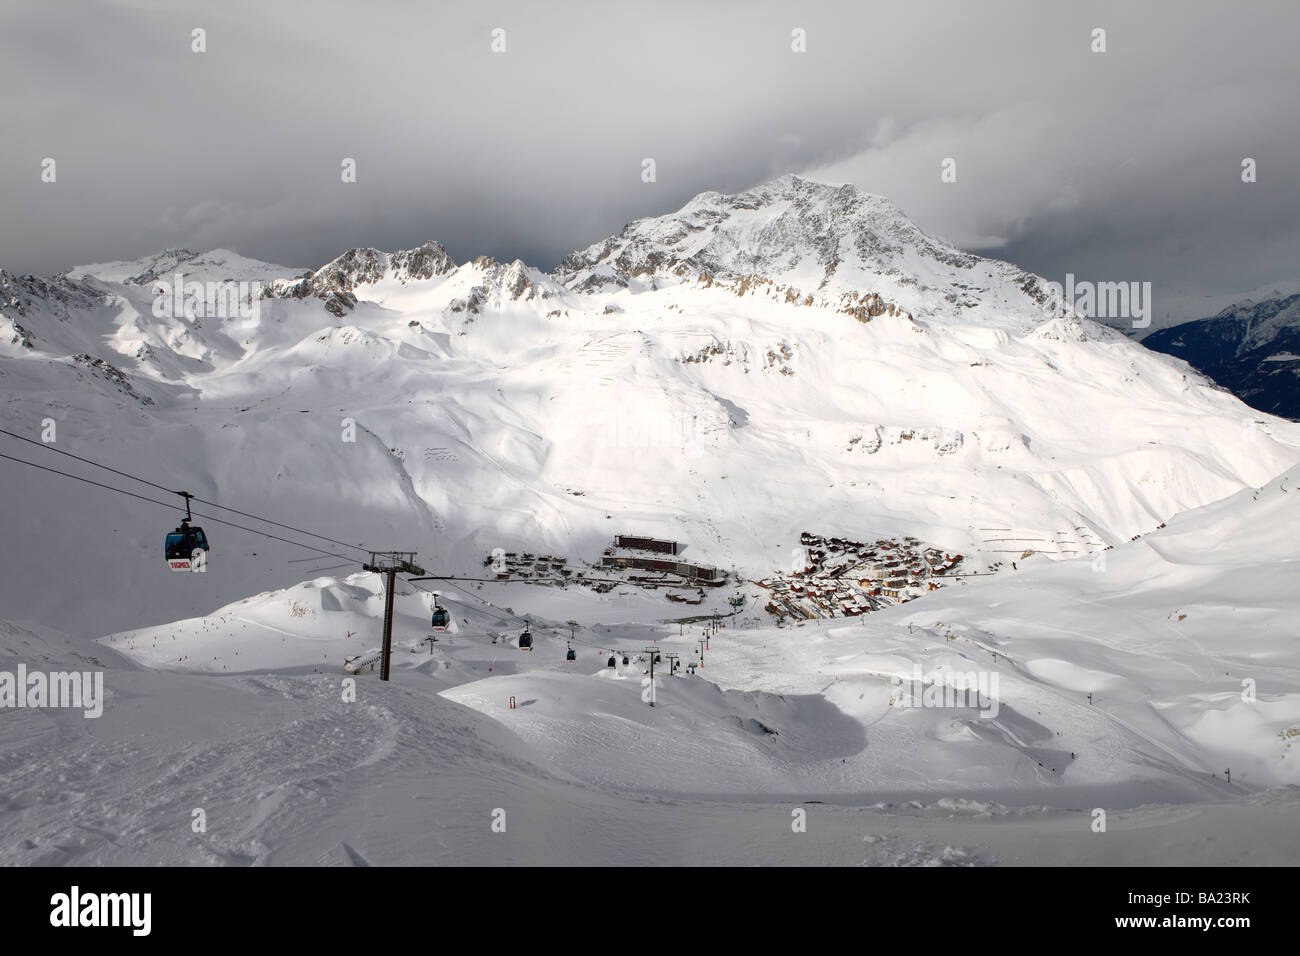 The ski resort of Tignes Le Lac in the midst of a break in a snow storm, Espace Killy, France - Stock Image